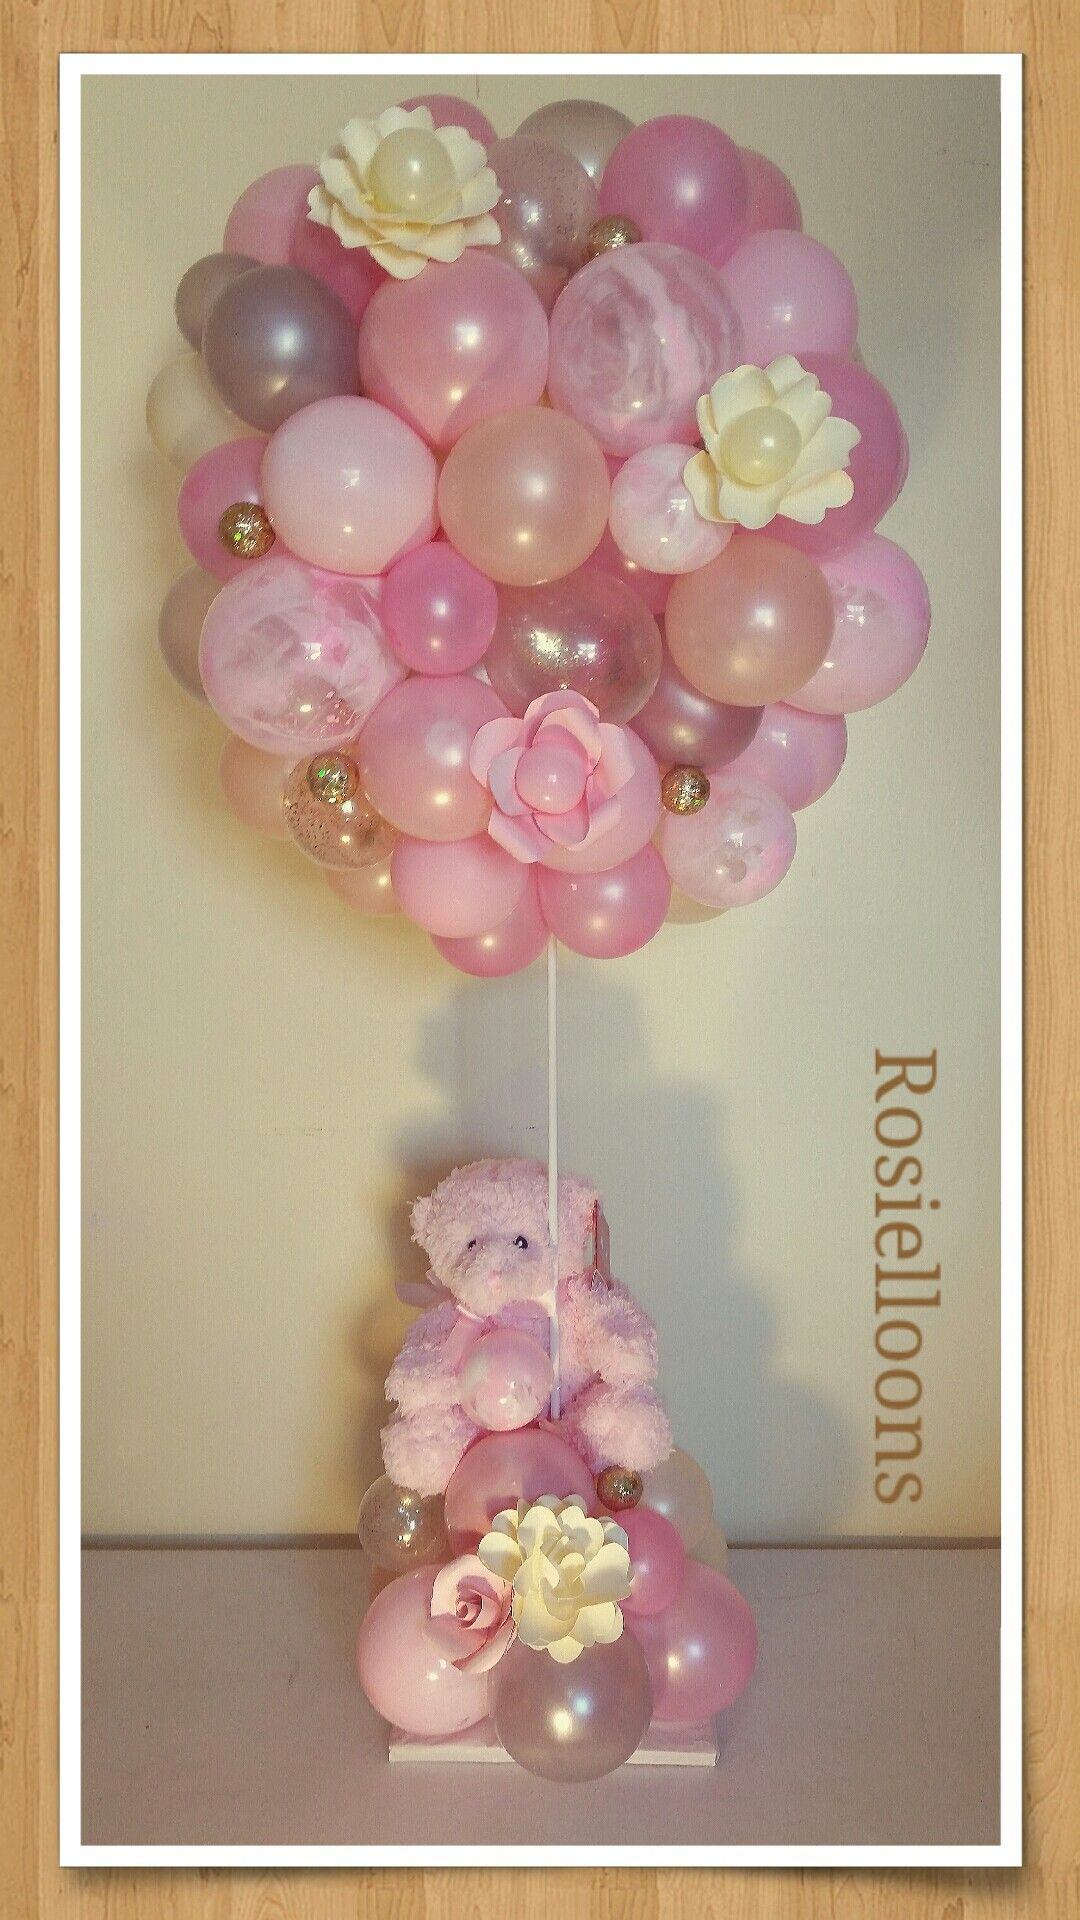 Pin by Rosielloons on baby shower balloons decor